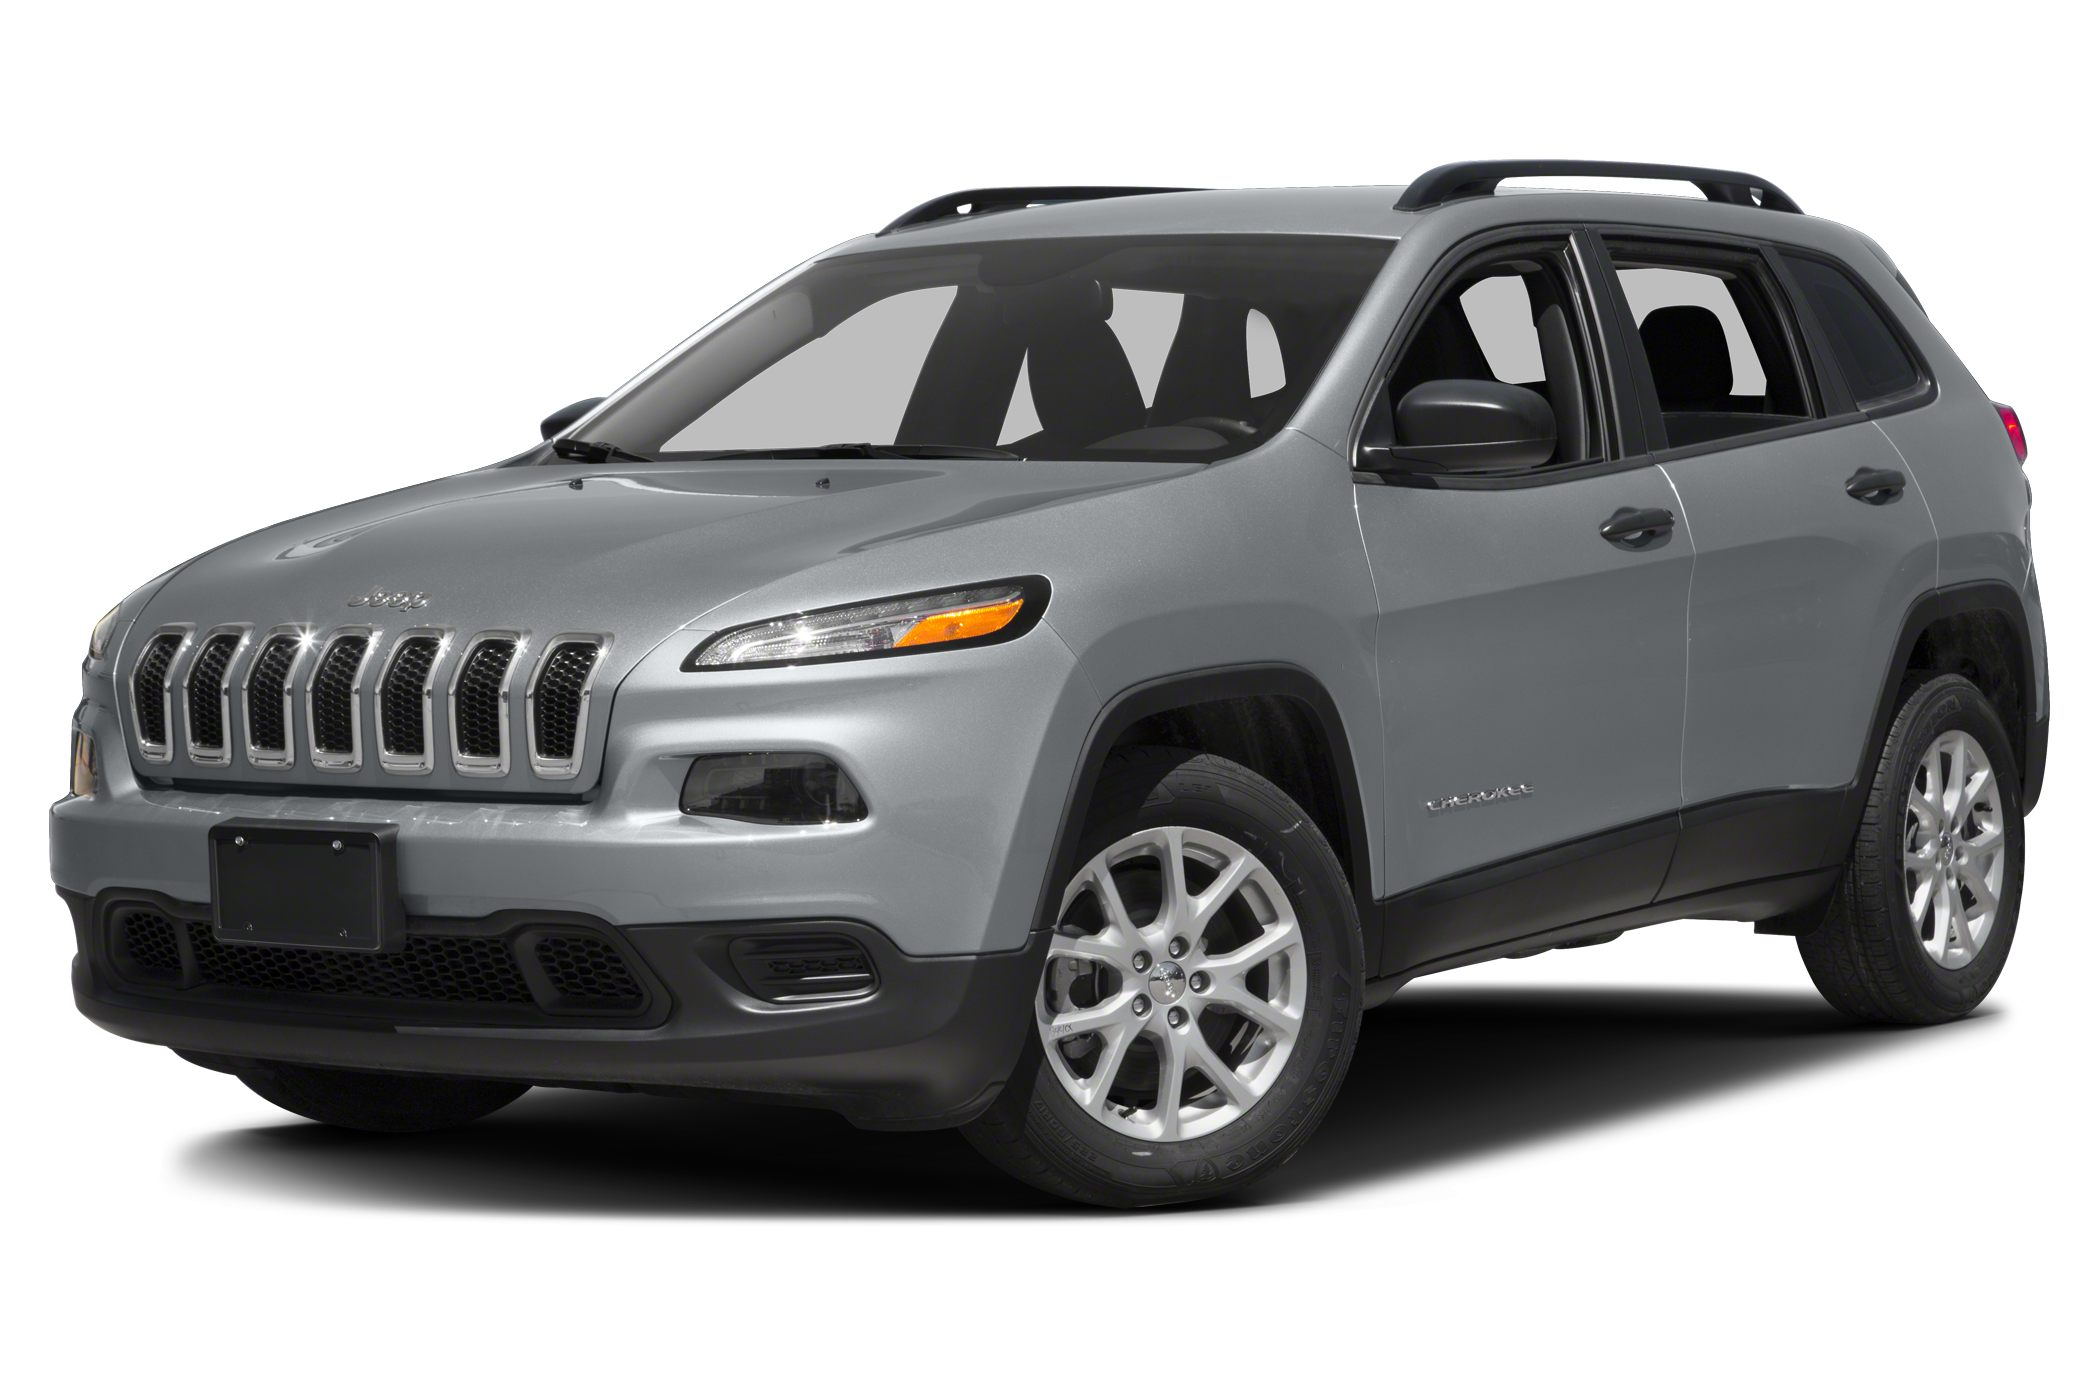 jeep cherokee reviews - productreview.au